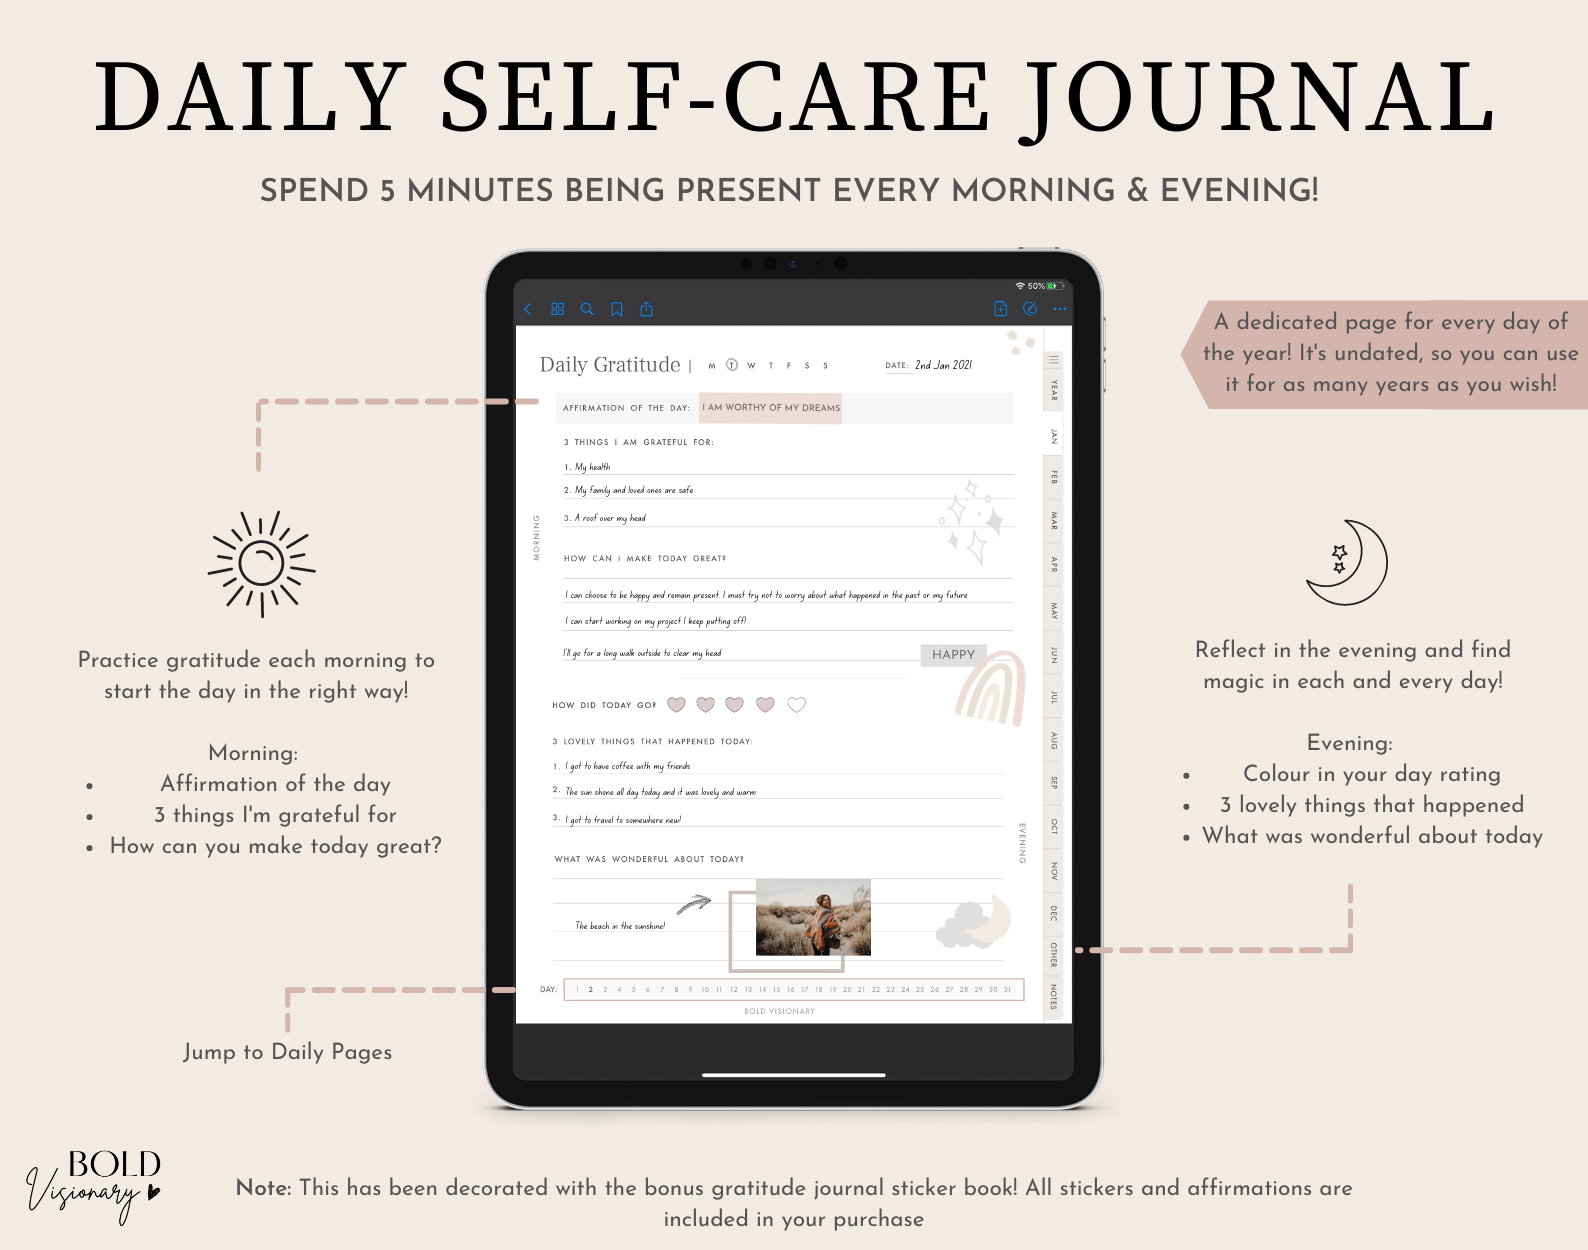 5-Daily-Page-Bold-Visionary-Digital-Gratitude-Journal